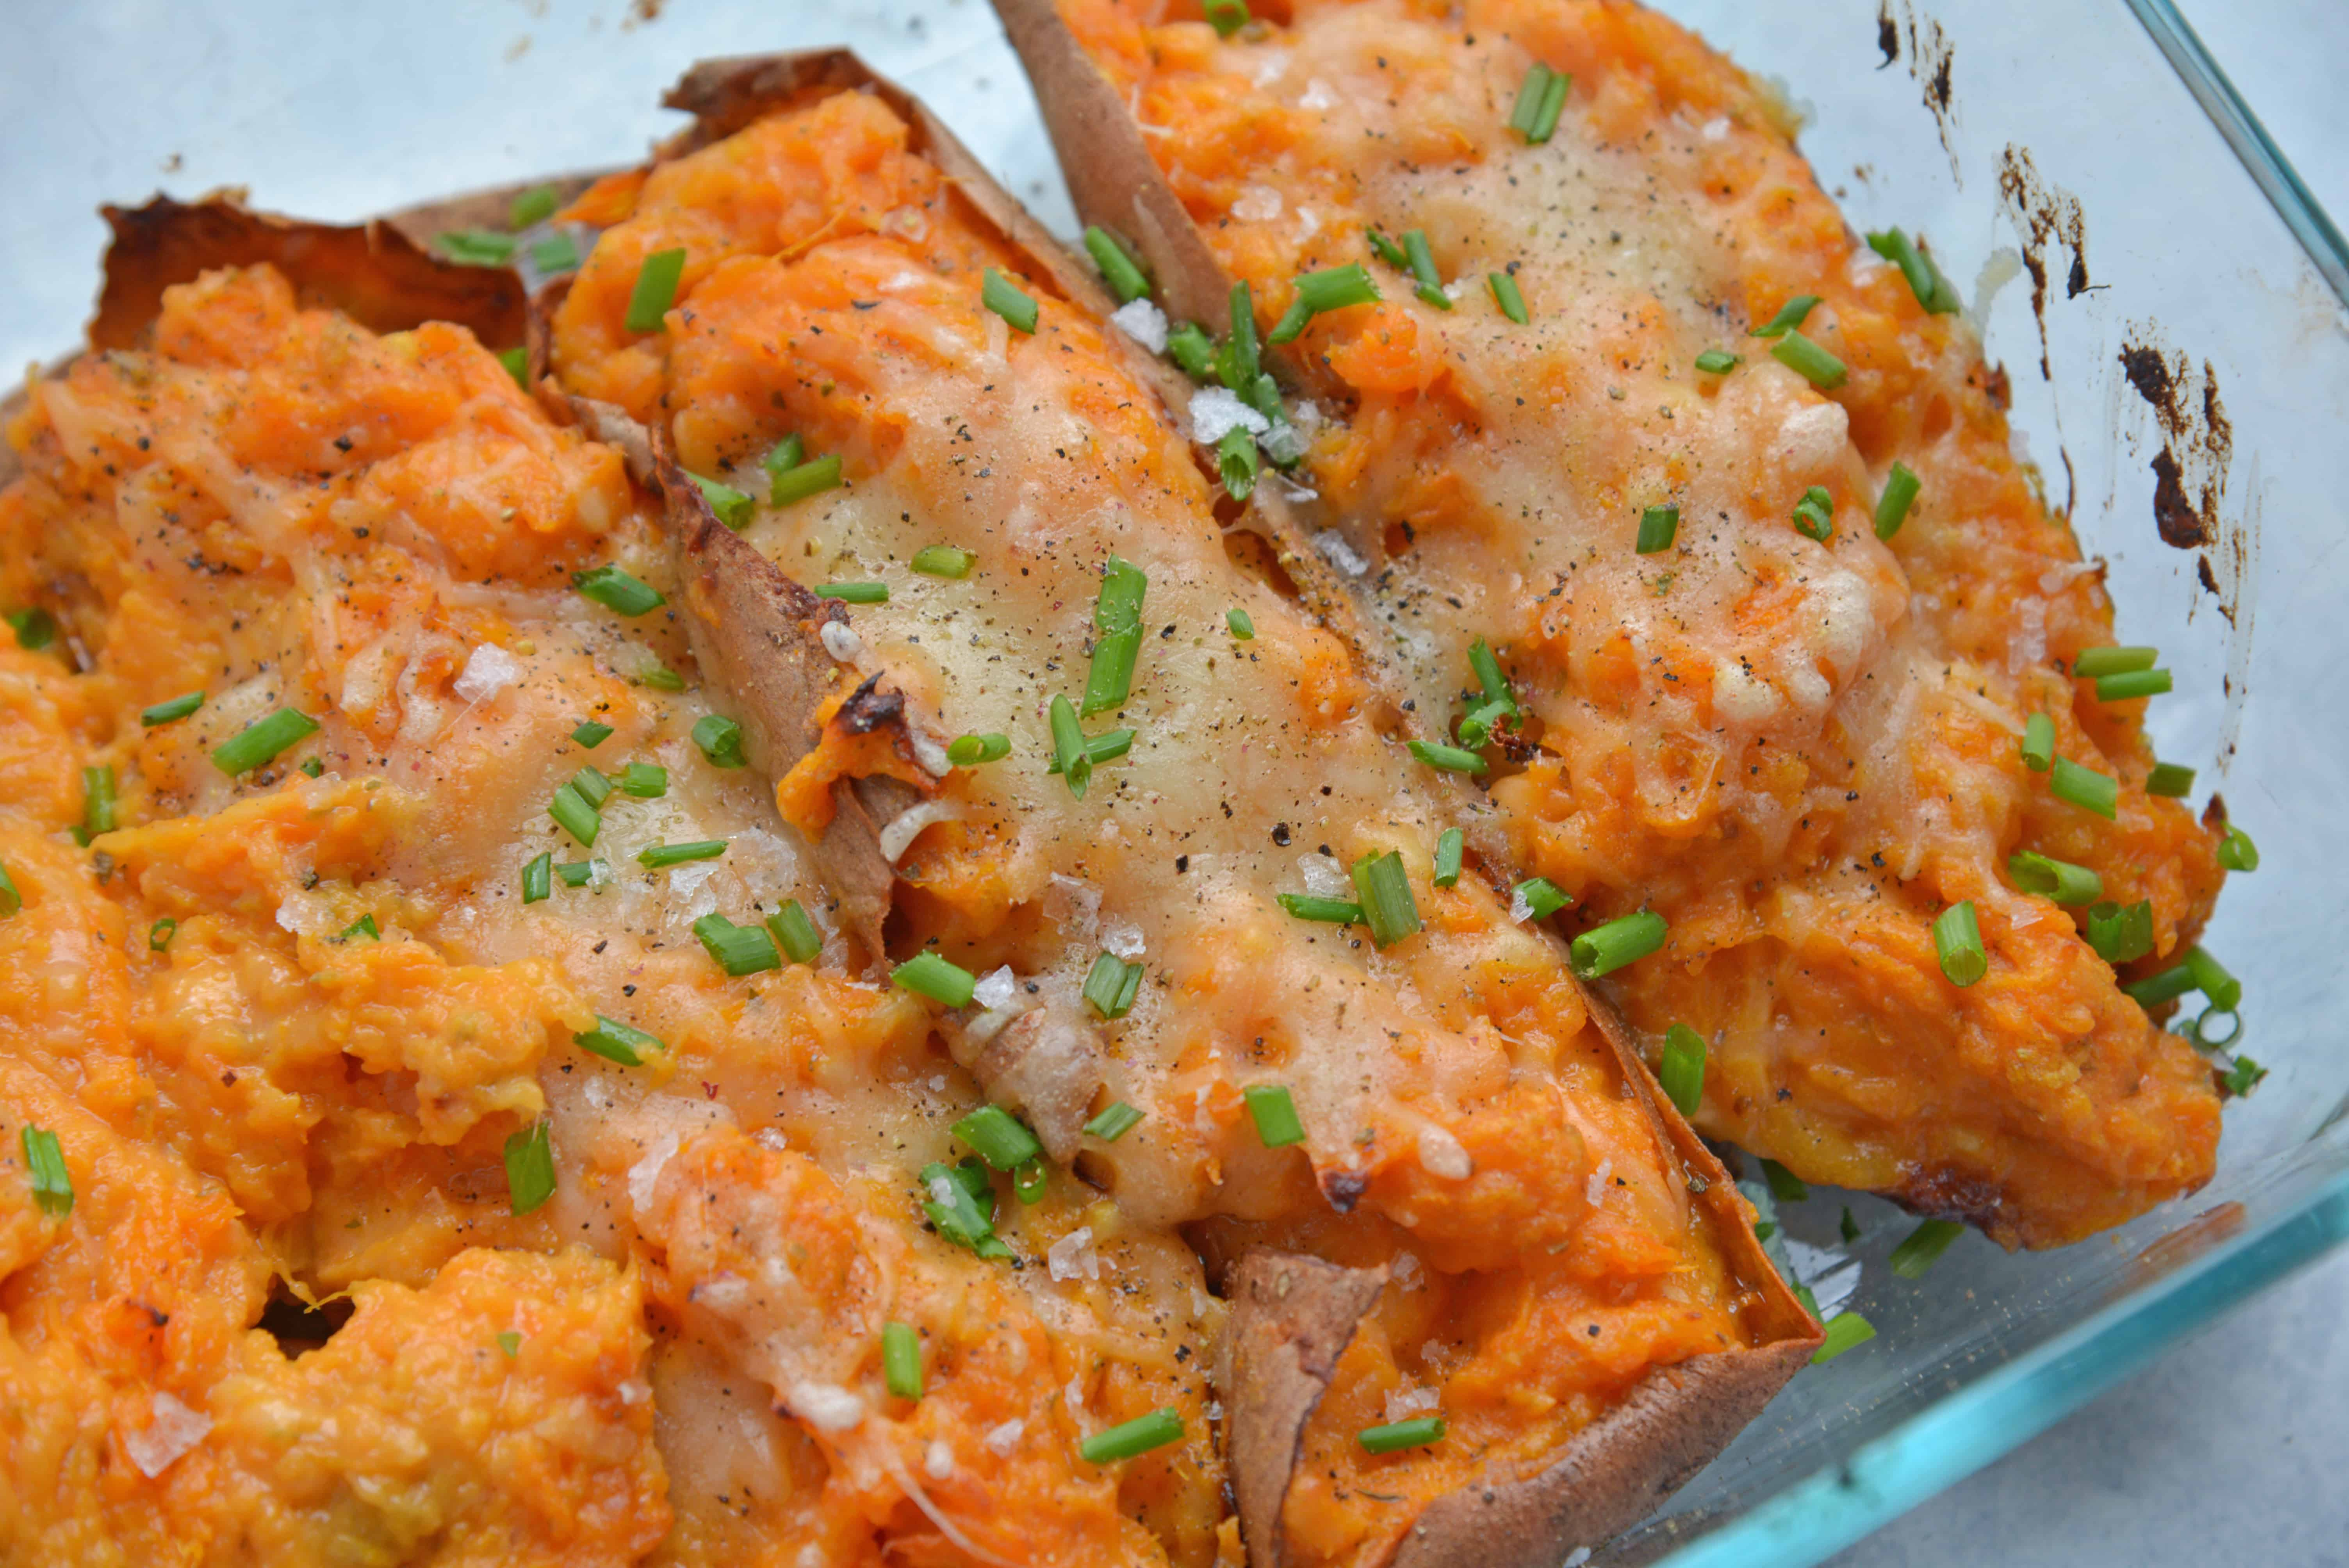 angle view of stuffed sweet potato with cheese and chives